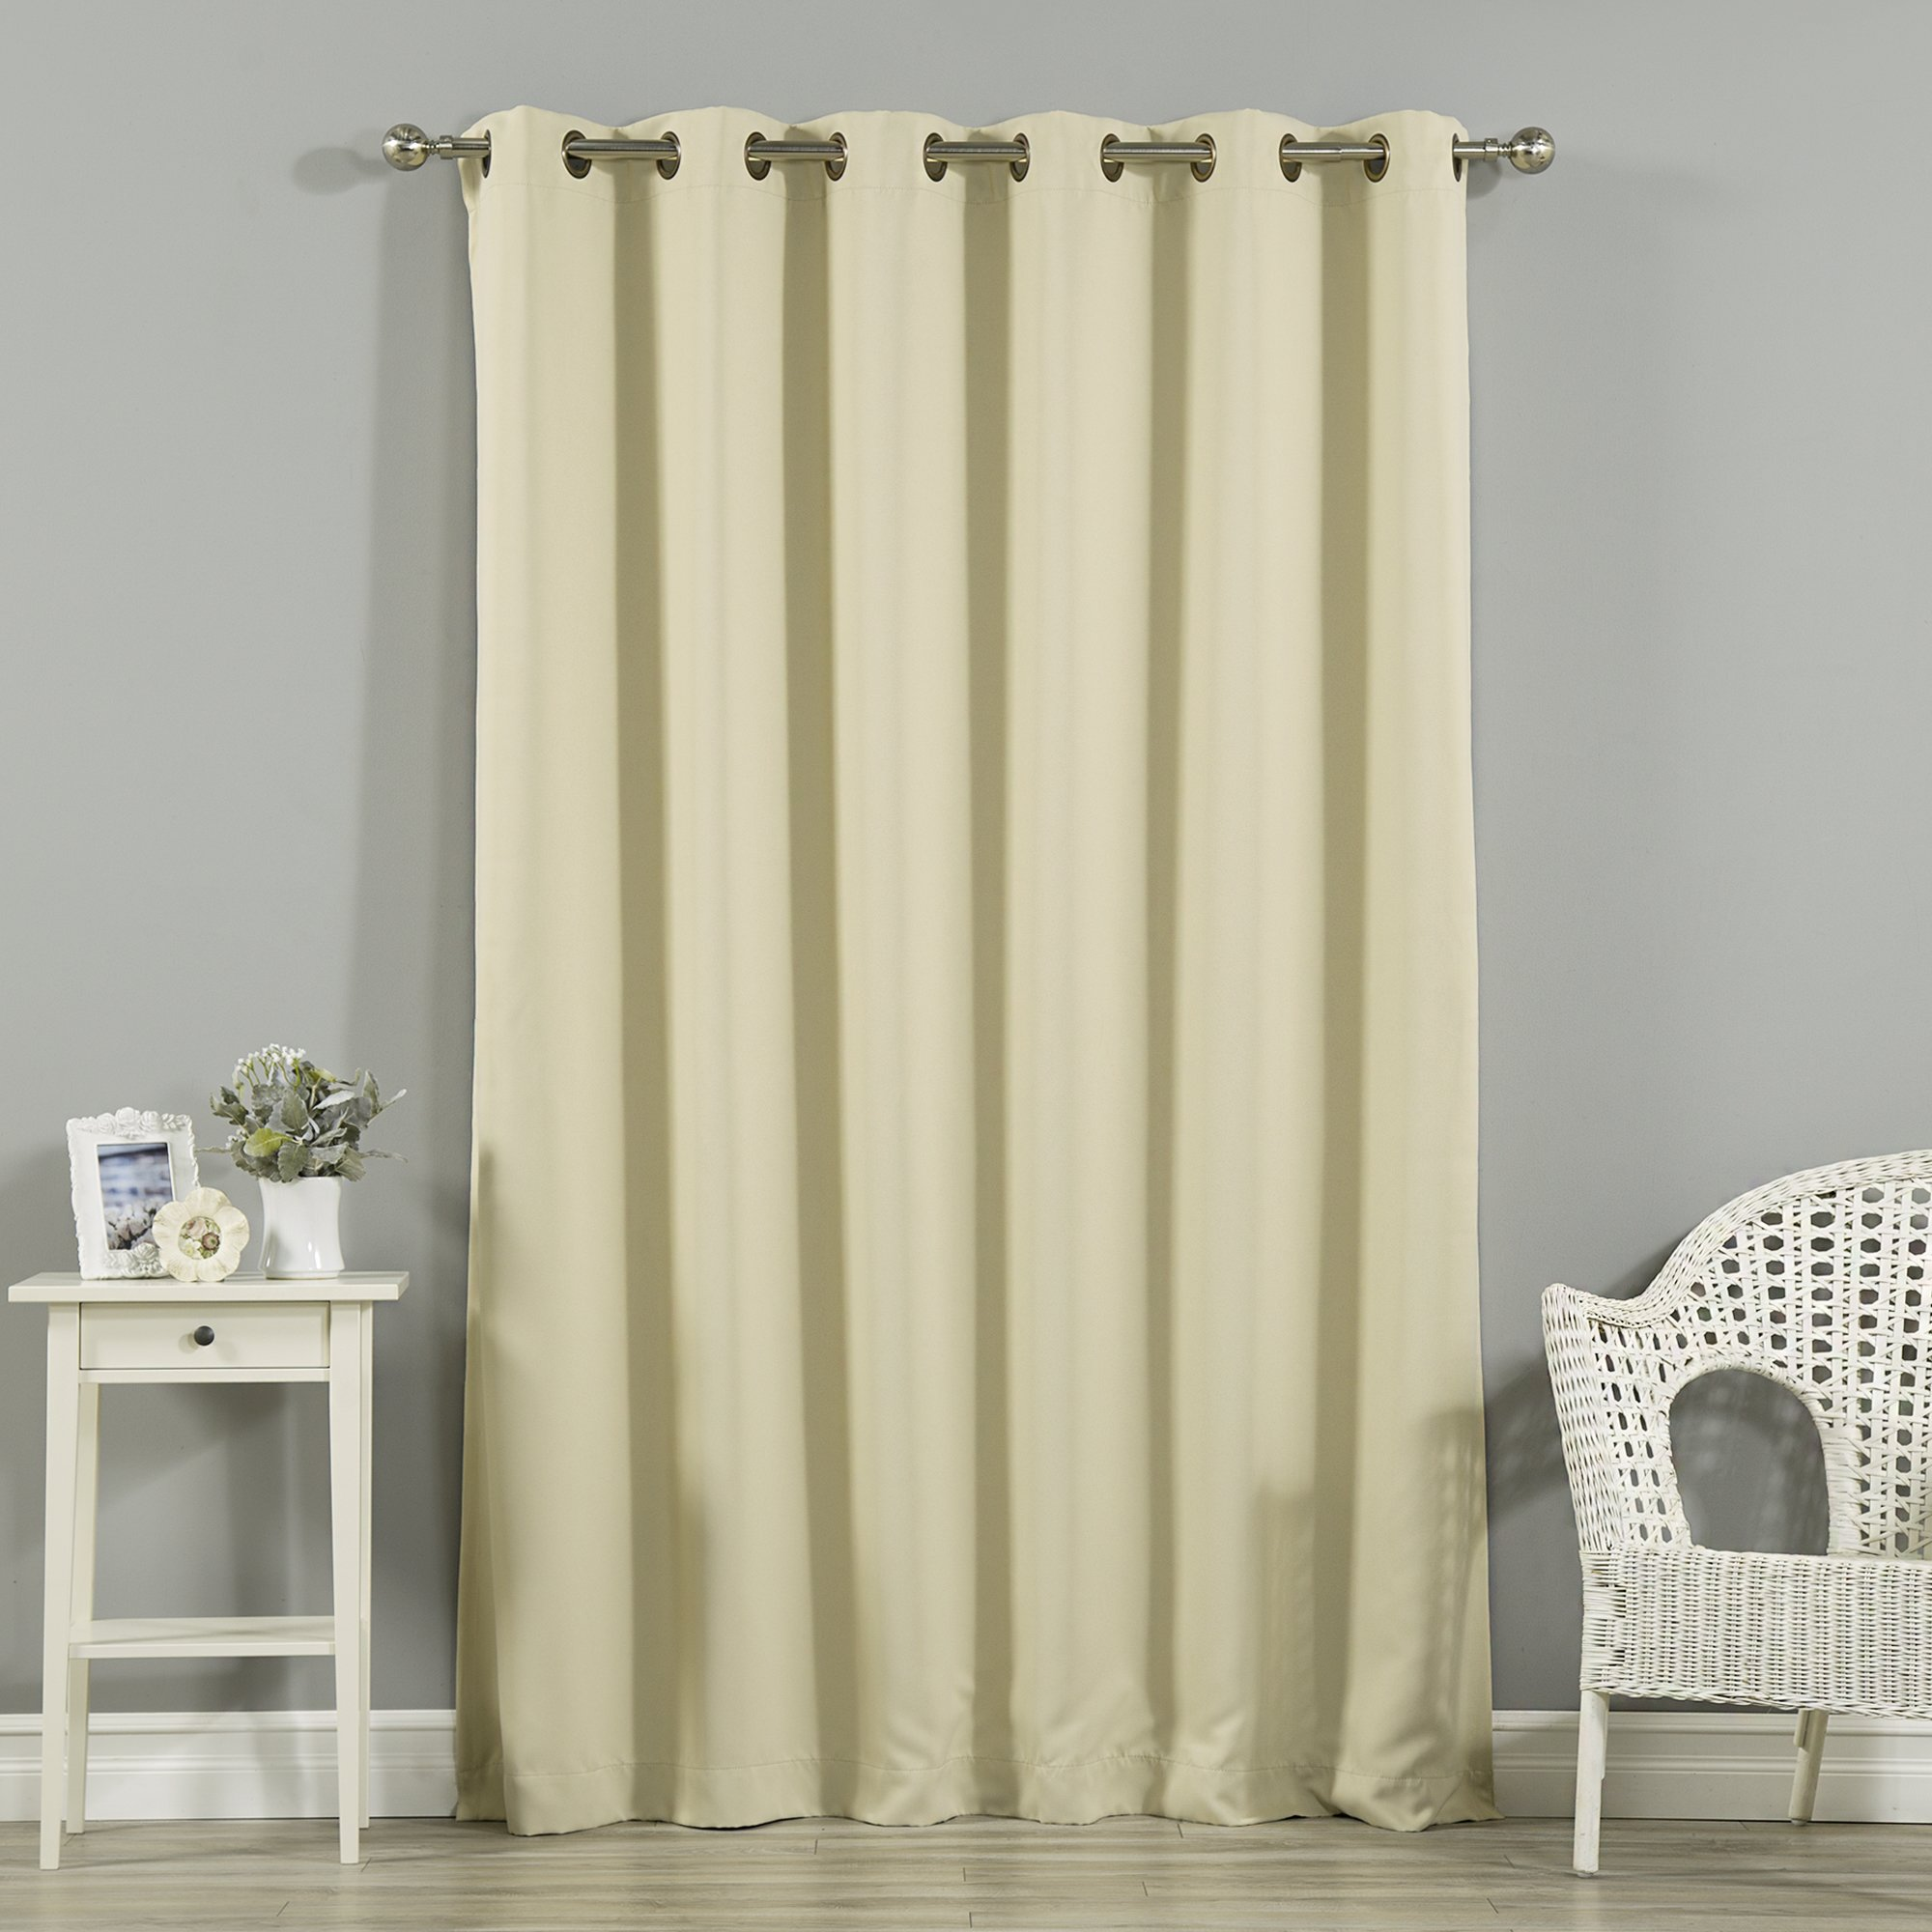 Cute QUICK VIEW. Scarsdale Extra Wide ... extra wide pinch pleat drapes